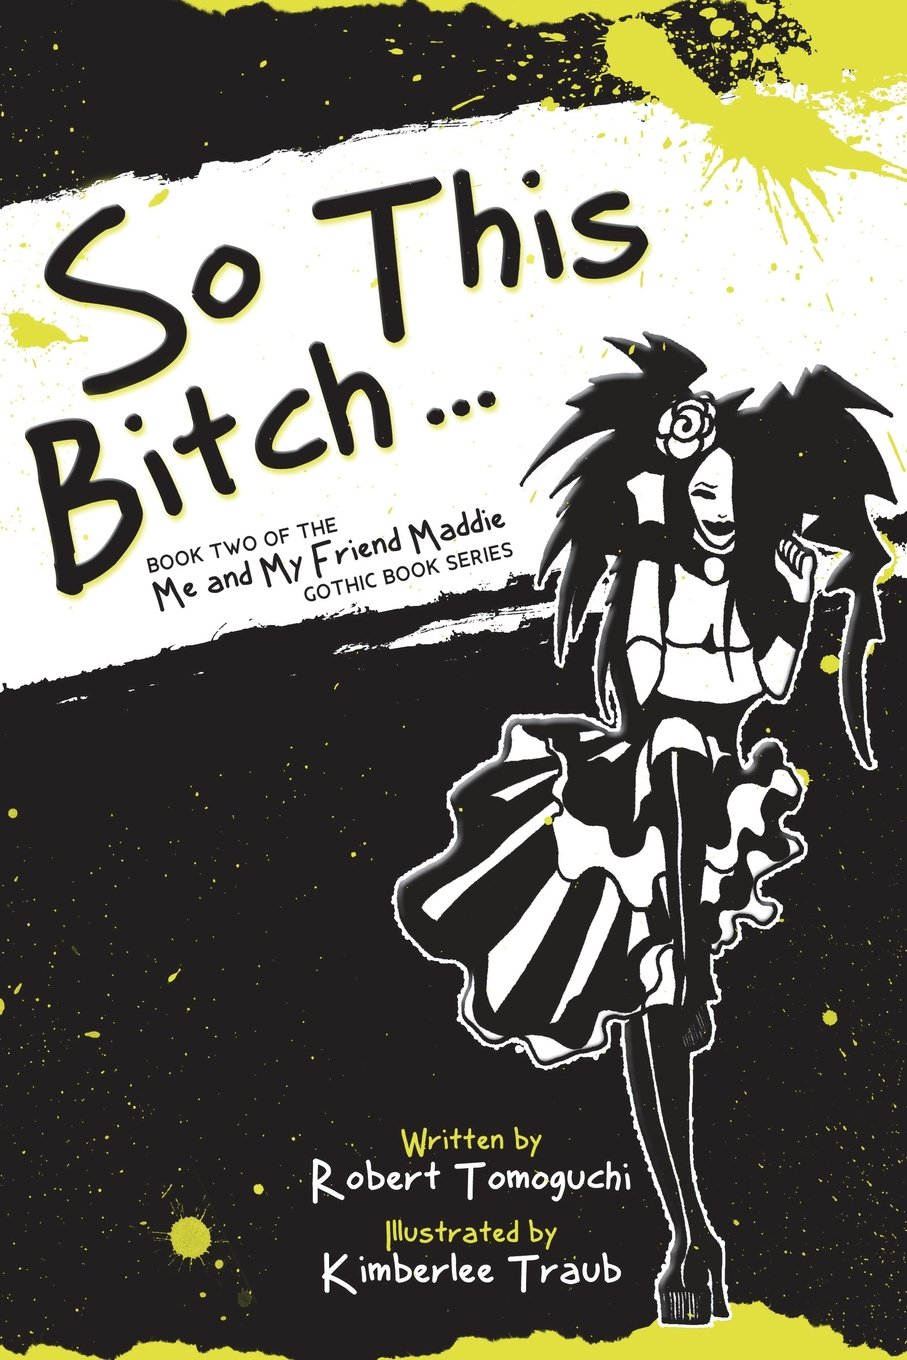 Read Online So This Bitch...: How Doing Aerobics Made Me a Less Jealous Person (Me and My Friend Maddie Gothic Book Series) (Volume 2) pdf